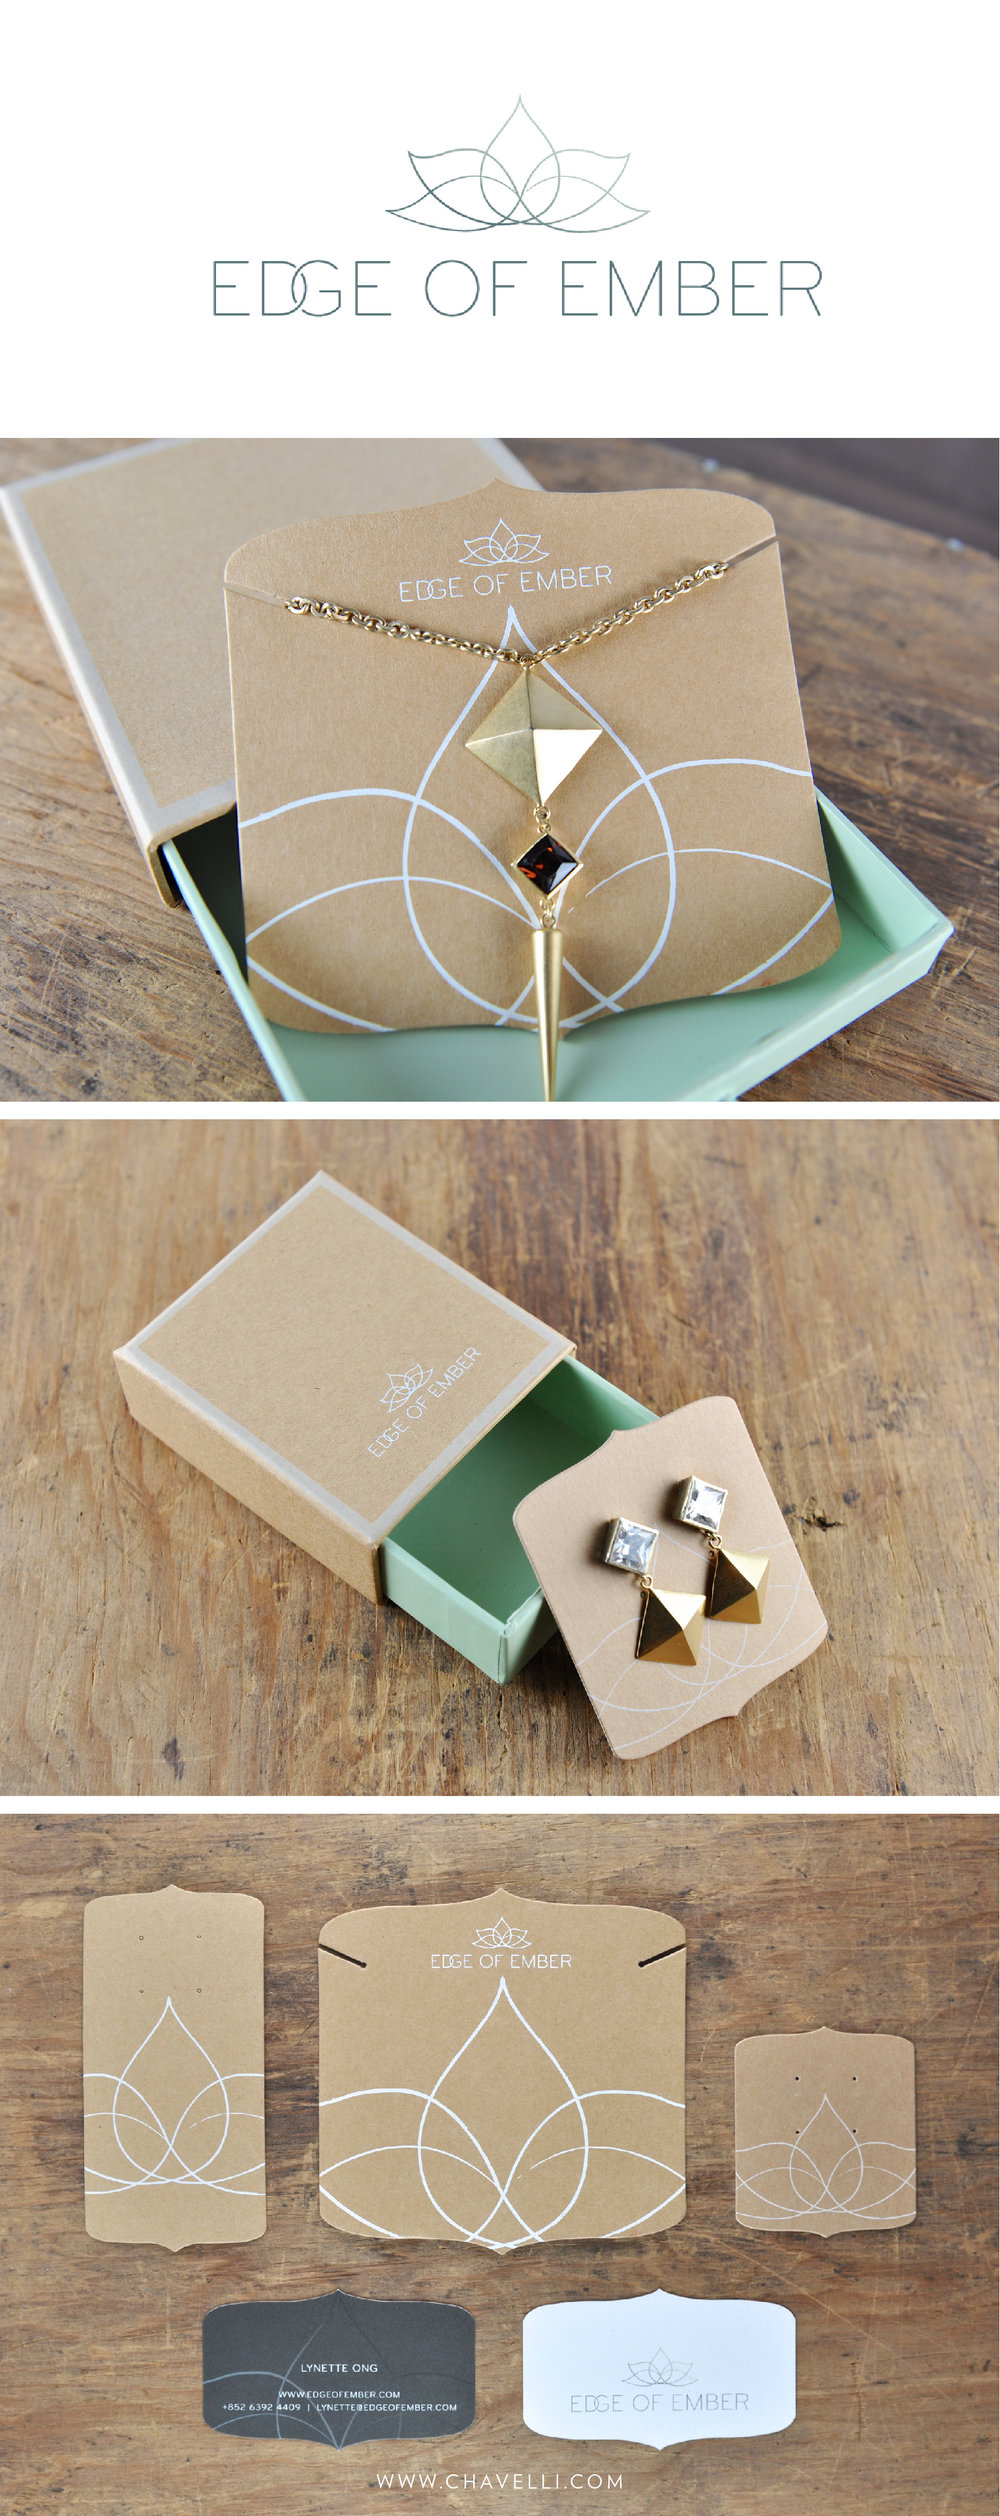 Custom logo design, branding and packaging design for jewelry brand Edge of Ember // by Studio Chavelli www.chavelli.com